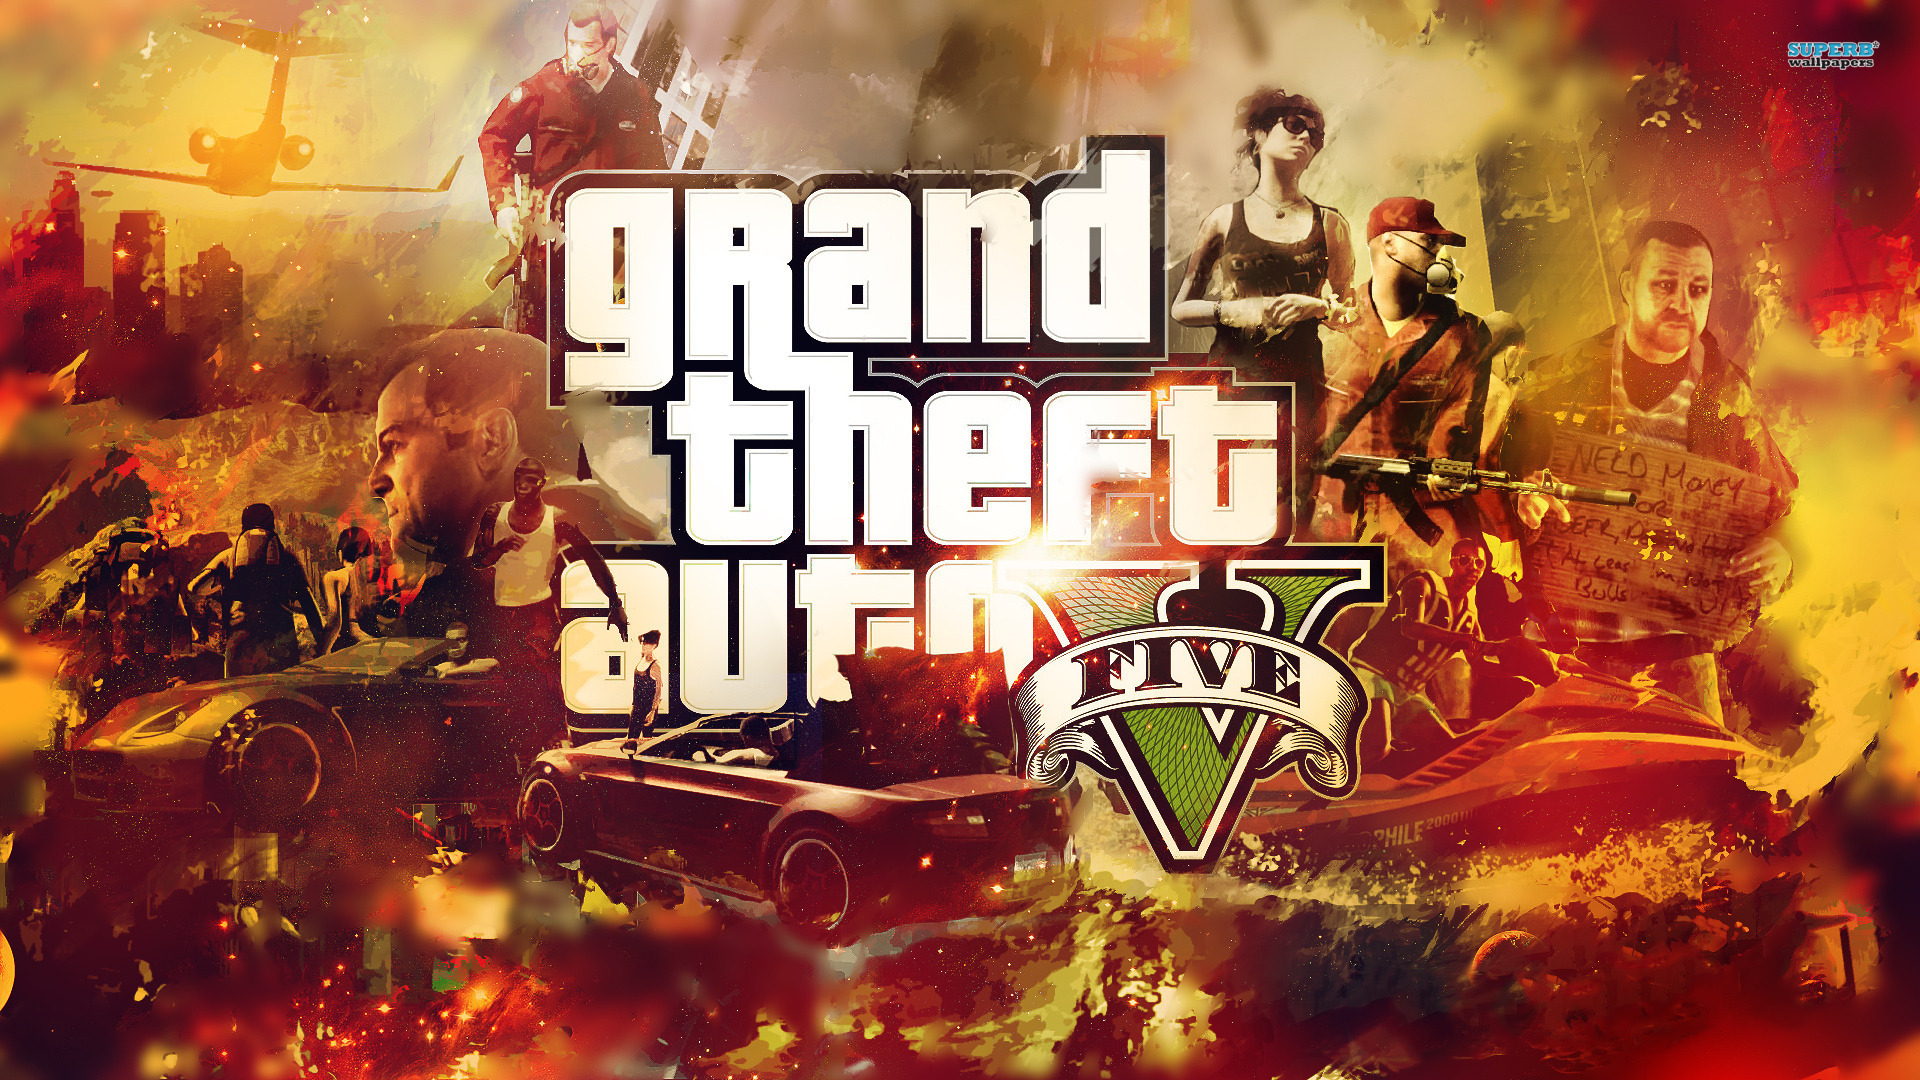 Grand Theft Auto V Wallpapers Hintergrnde 1920x1080 ID439638 1920x1080